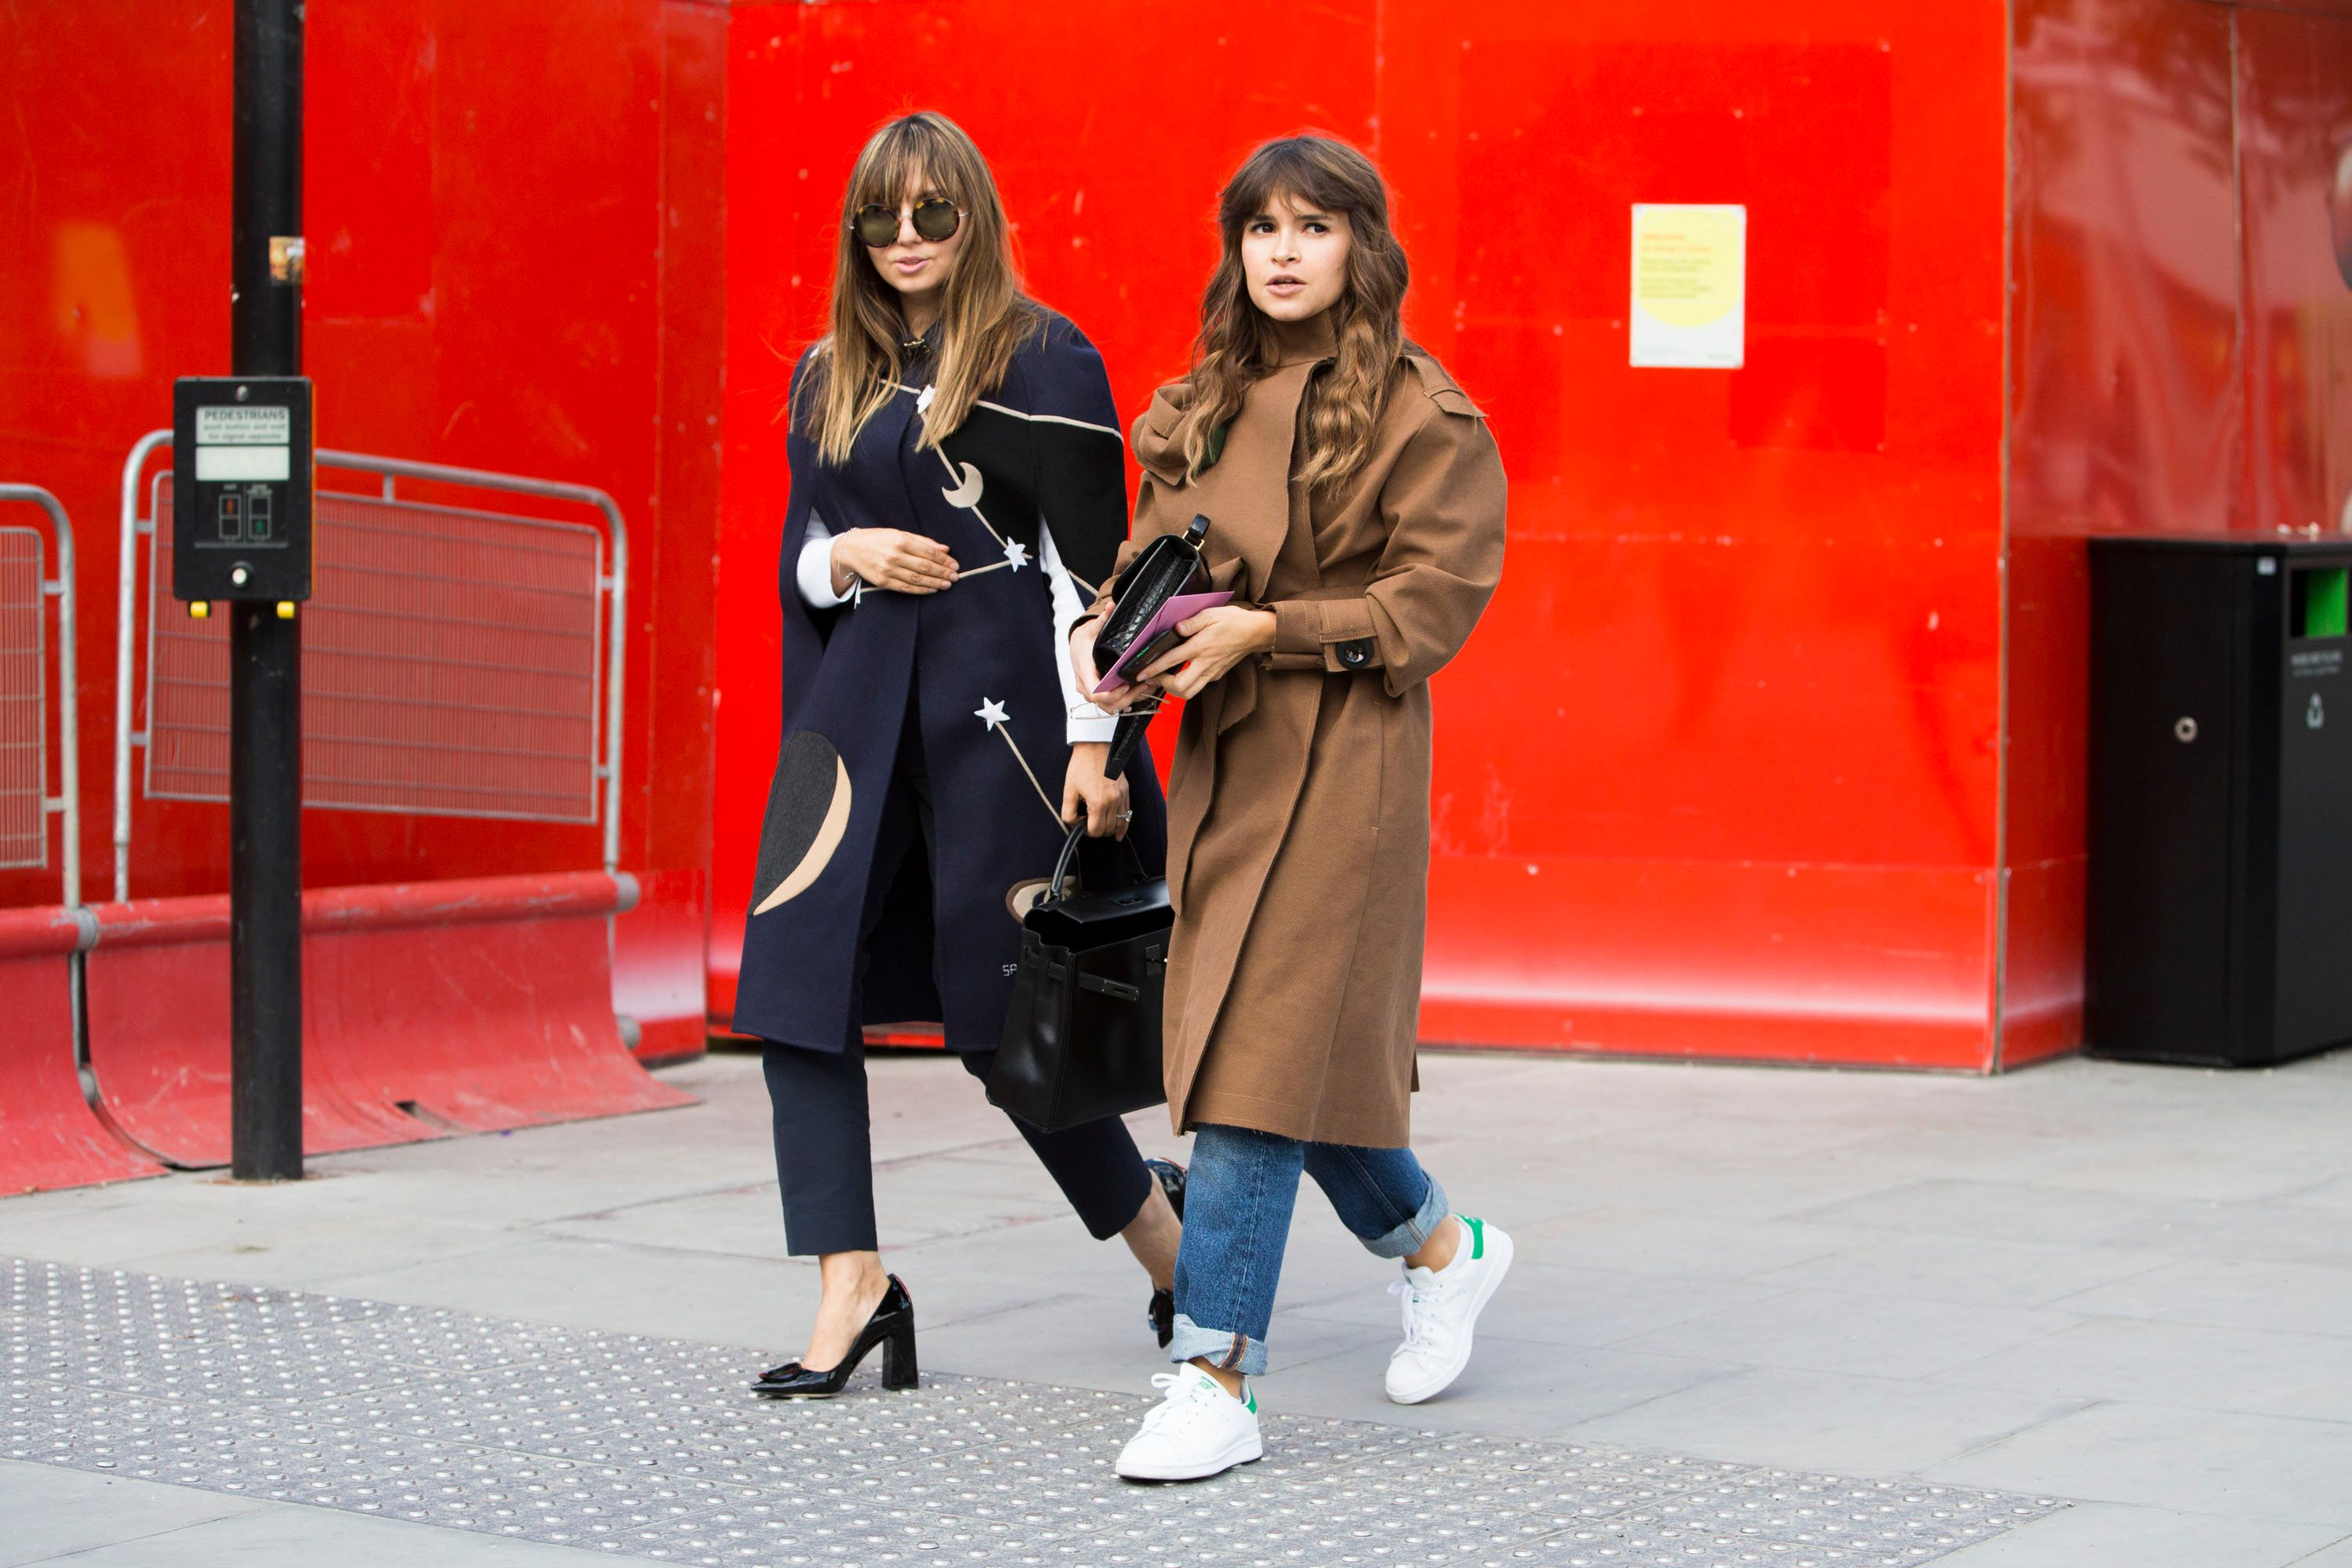 LONDON, ENGLAND - SEPTEMBER 19:  Nasiba Adilova and Miroslava Duma exit a show during London Fashion Week Spring Summer 2016 at Kings Cross on September 19, 2015 in London, England Nasiba wears a blue Valentino cape with planets and stars. Miroslava Duma wears a brown AWAKE trench coat, Hermes purse, and white Adidas Stan Smith sneakers.  (Photo by Melodie Jeng/Getty Images)